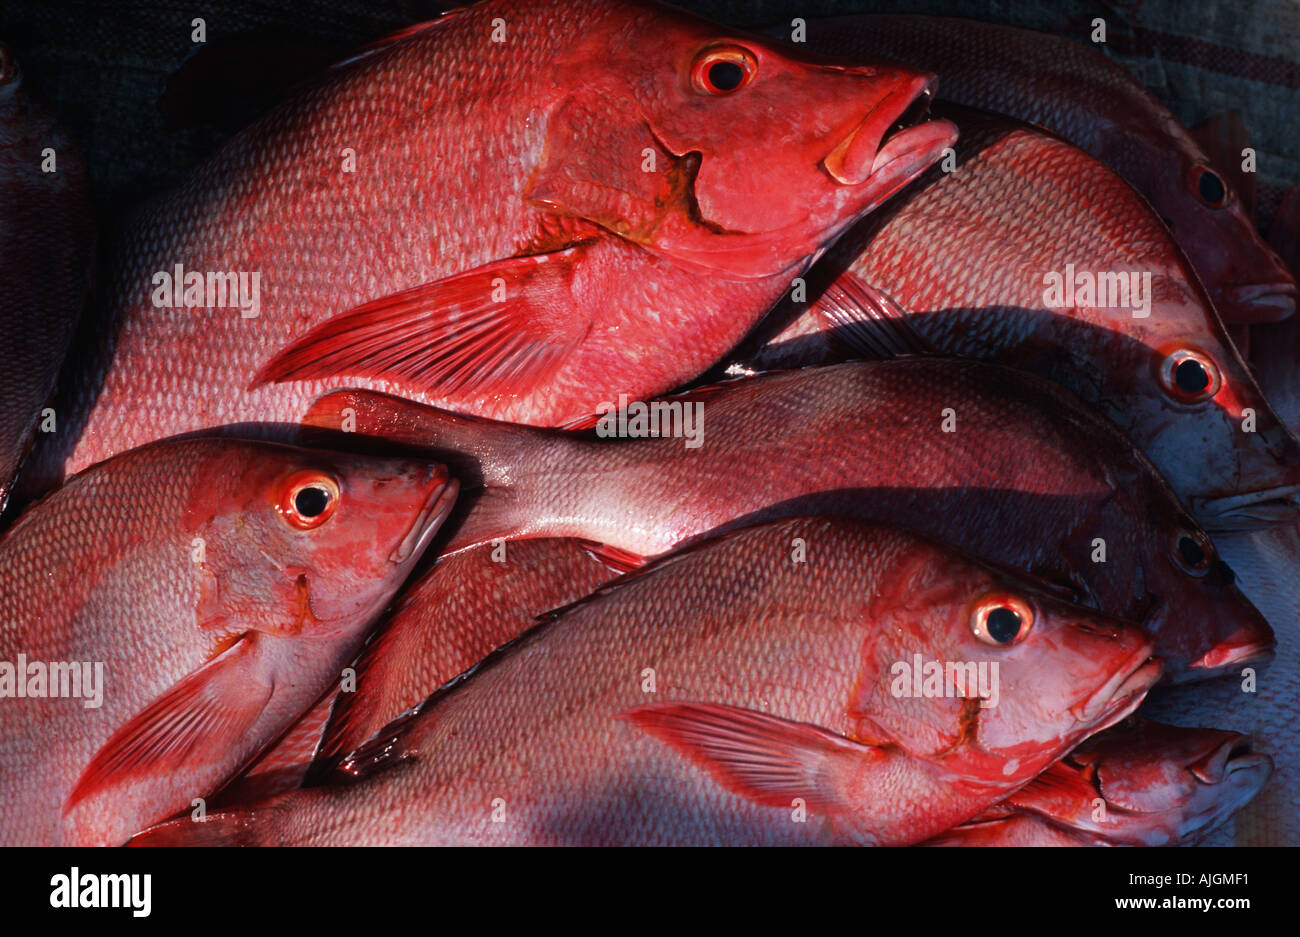 Colourful red fish in a fishermans basket at market Dar es Salaam fish market Tanzania East Africa - Stock Image